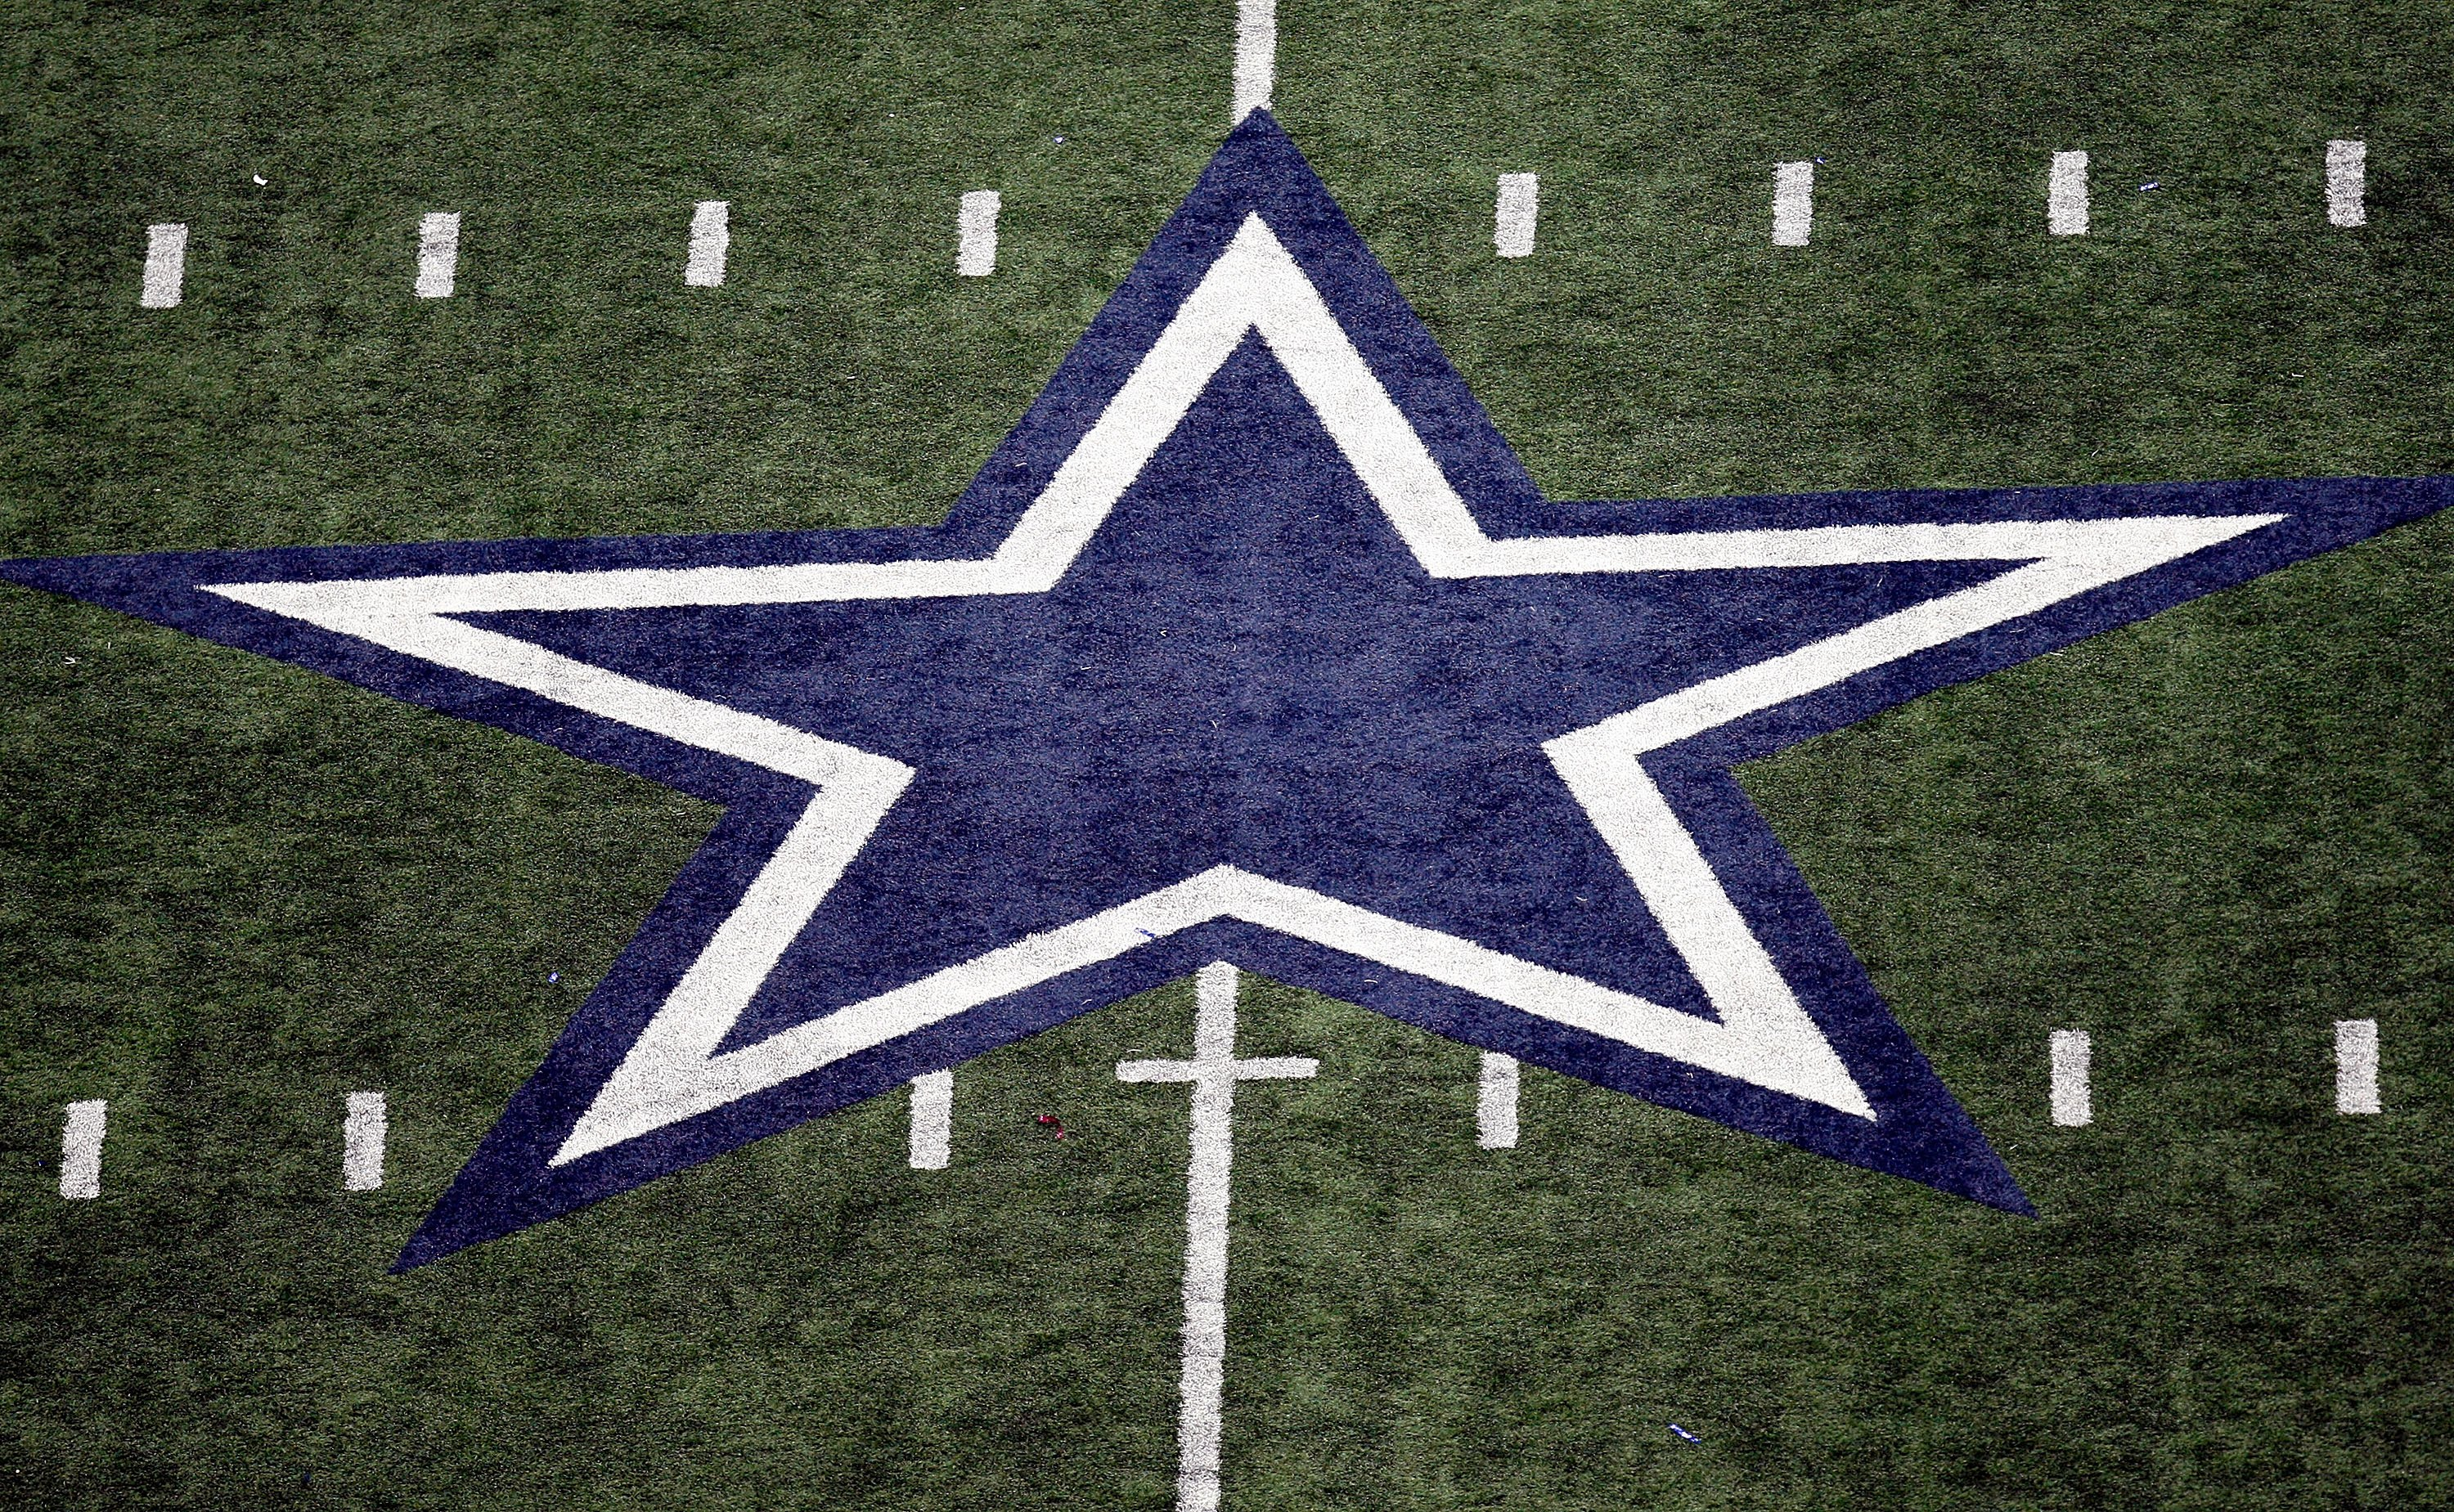 ARLINGTON, TX - NOVEMBER 01:  The star at Cowboys Stadium on November 1, 2009 in Arlington, Texas.  (Photo by Ronald Martinez/Getty Images)